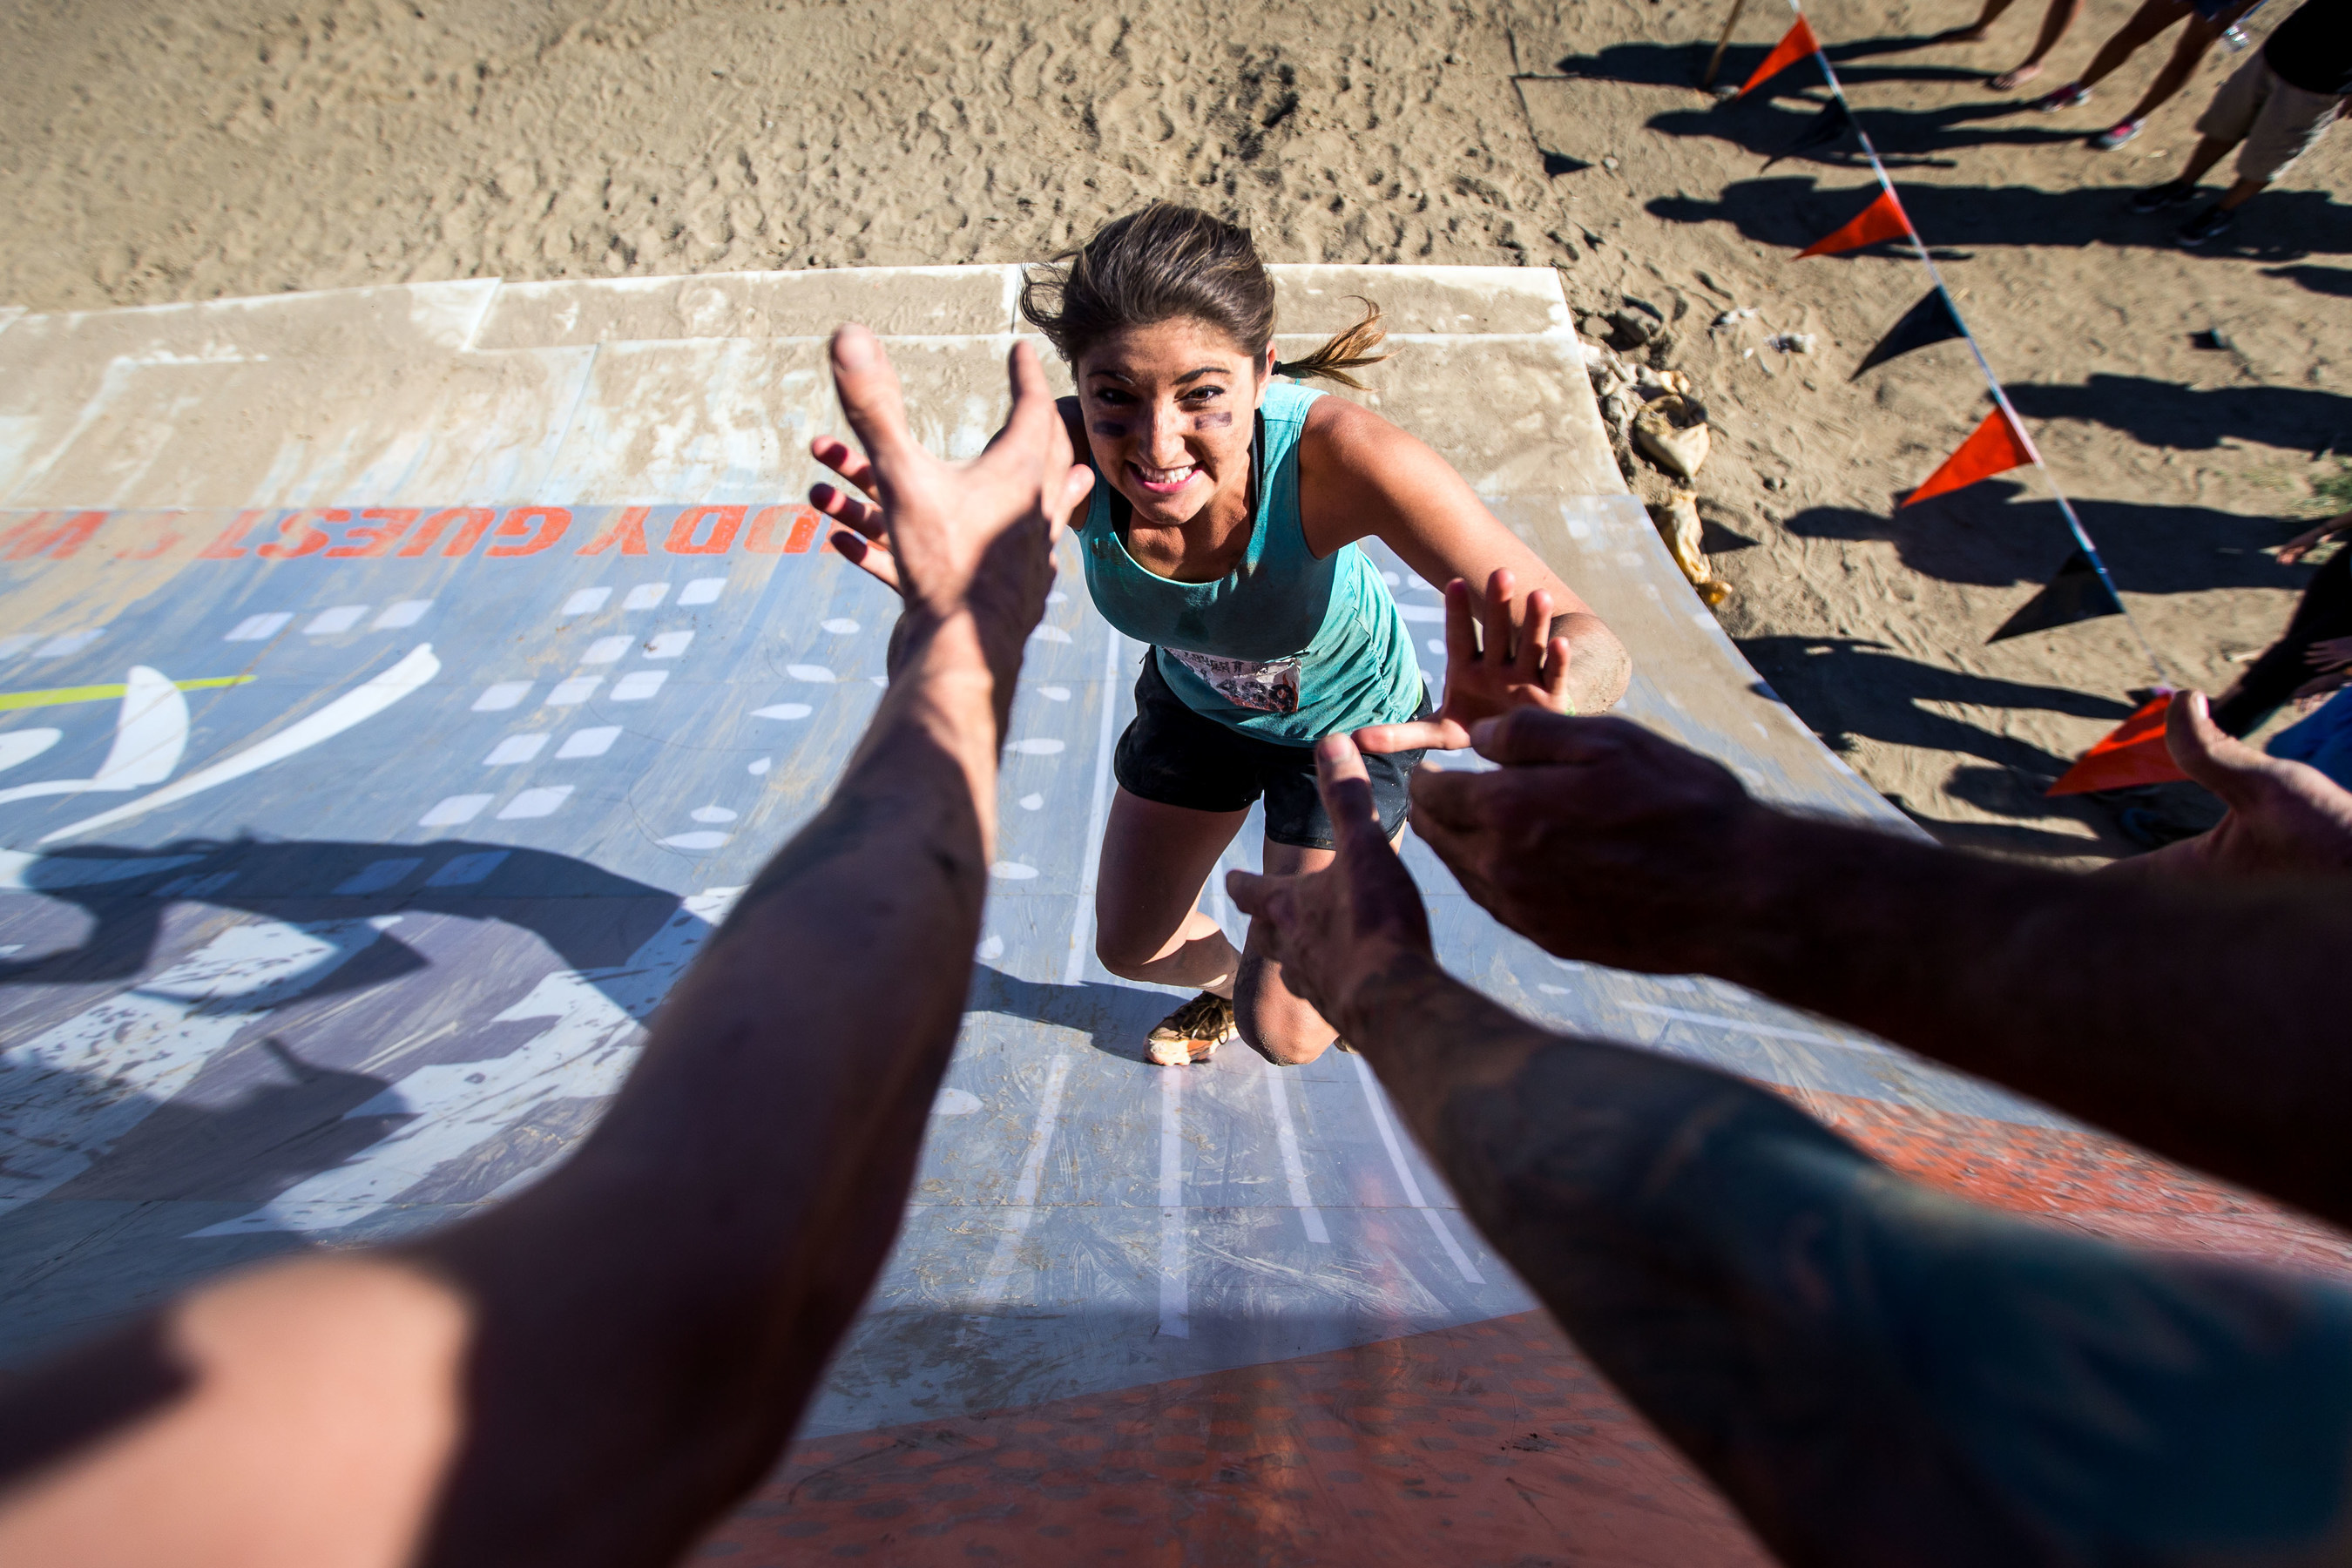 Merrell will also be the presenting partner for Tough Mudder Half, a new event series bringing the mud and obstacles Tough Mudder is known for to a shorter-distance format